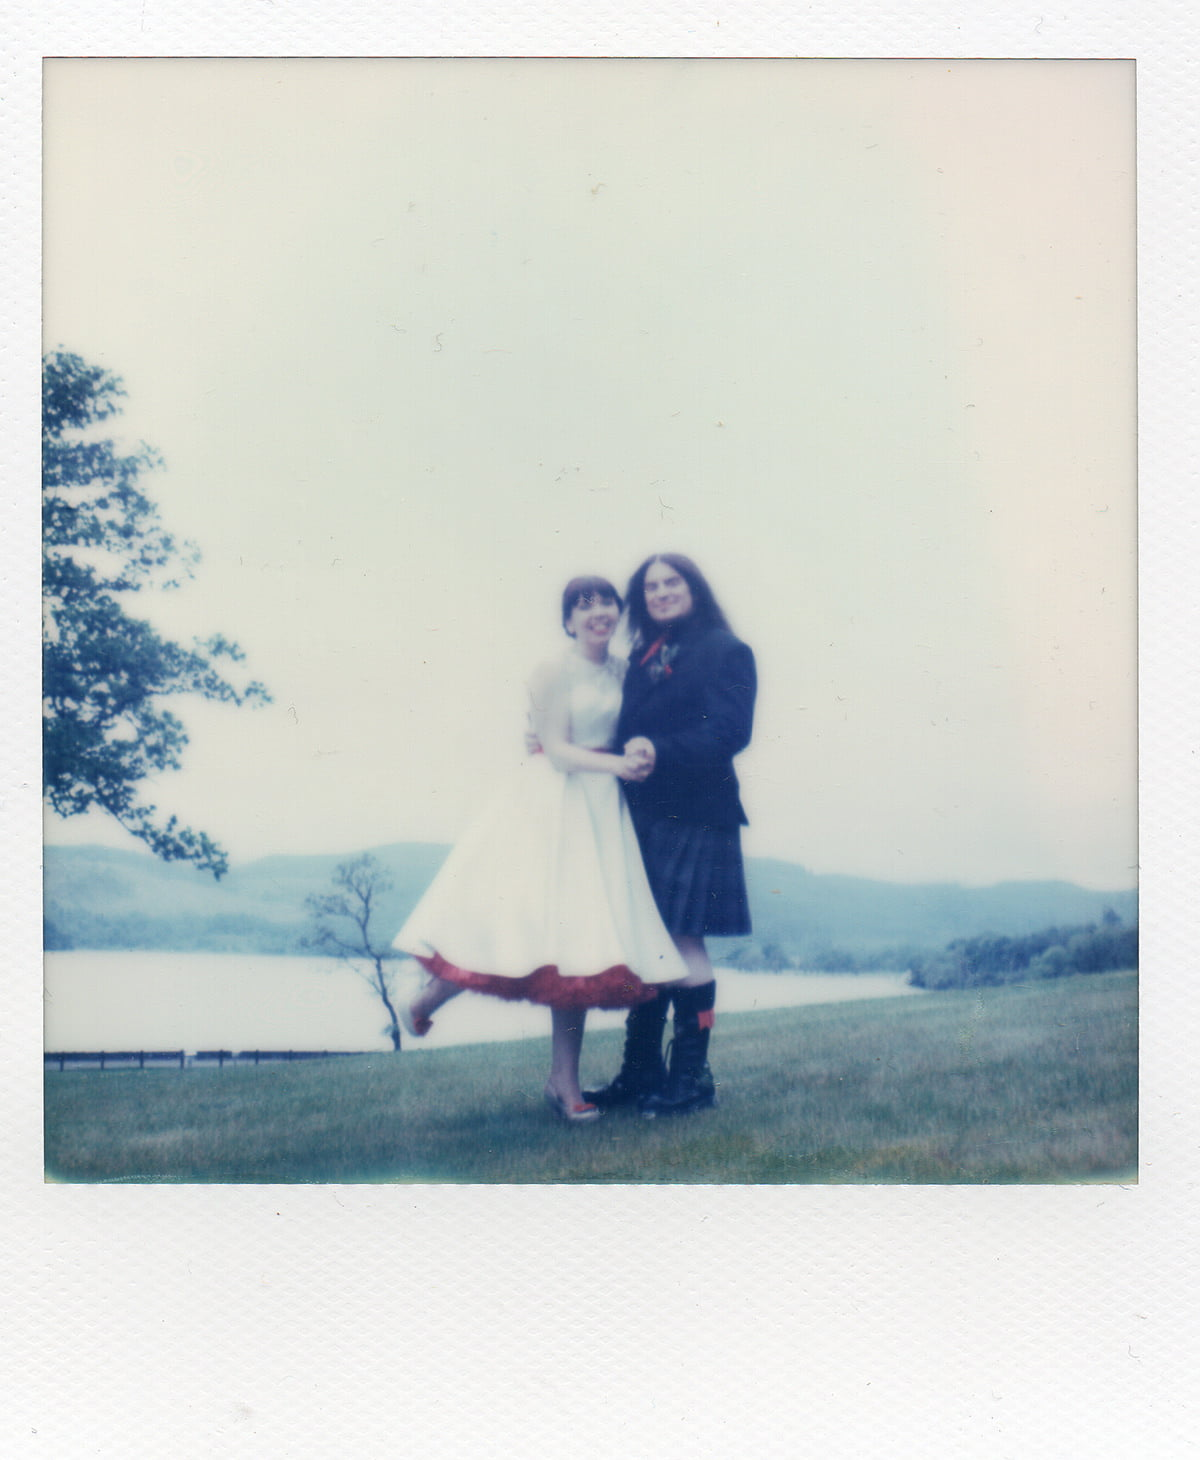 Impossible-Project-Polaroid-Film-Artistic-Quirky-Wedding-Photography-002